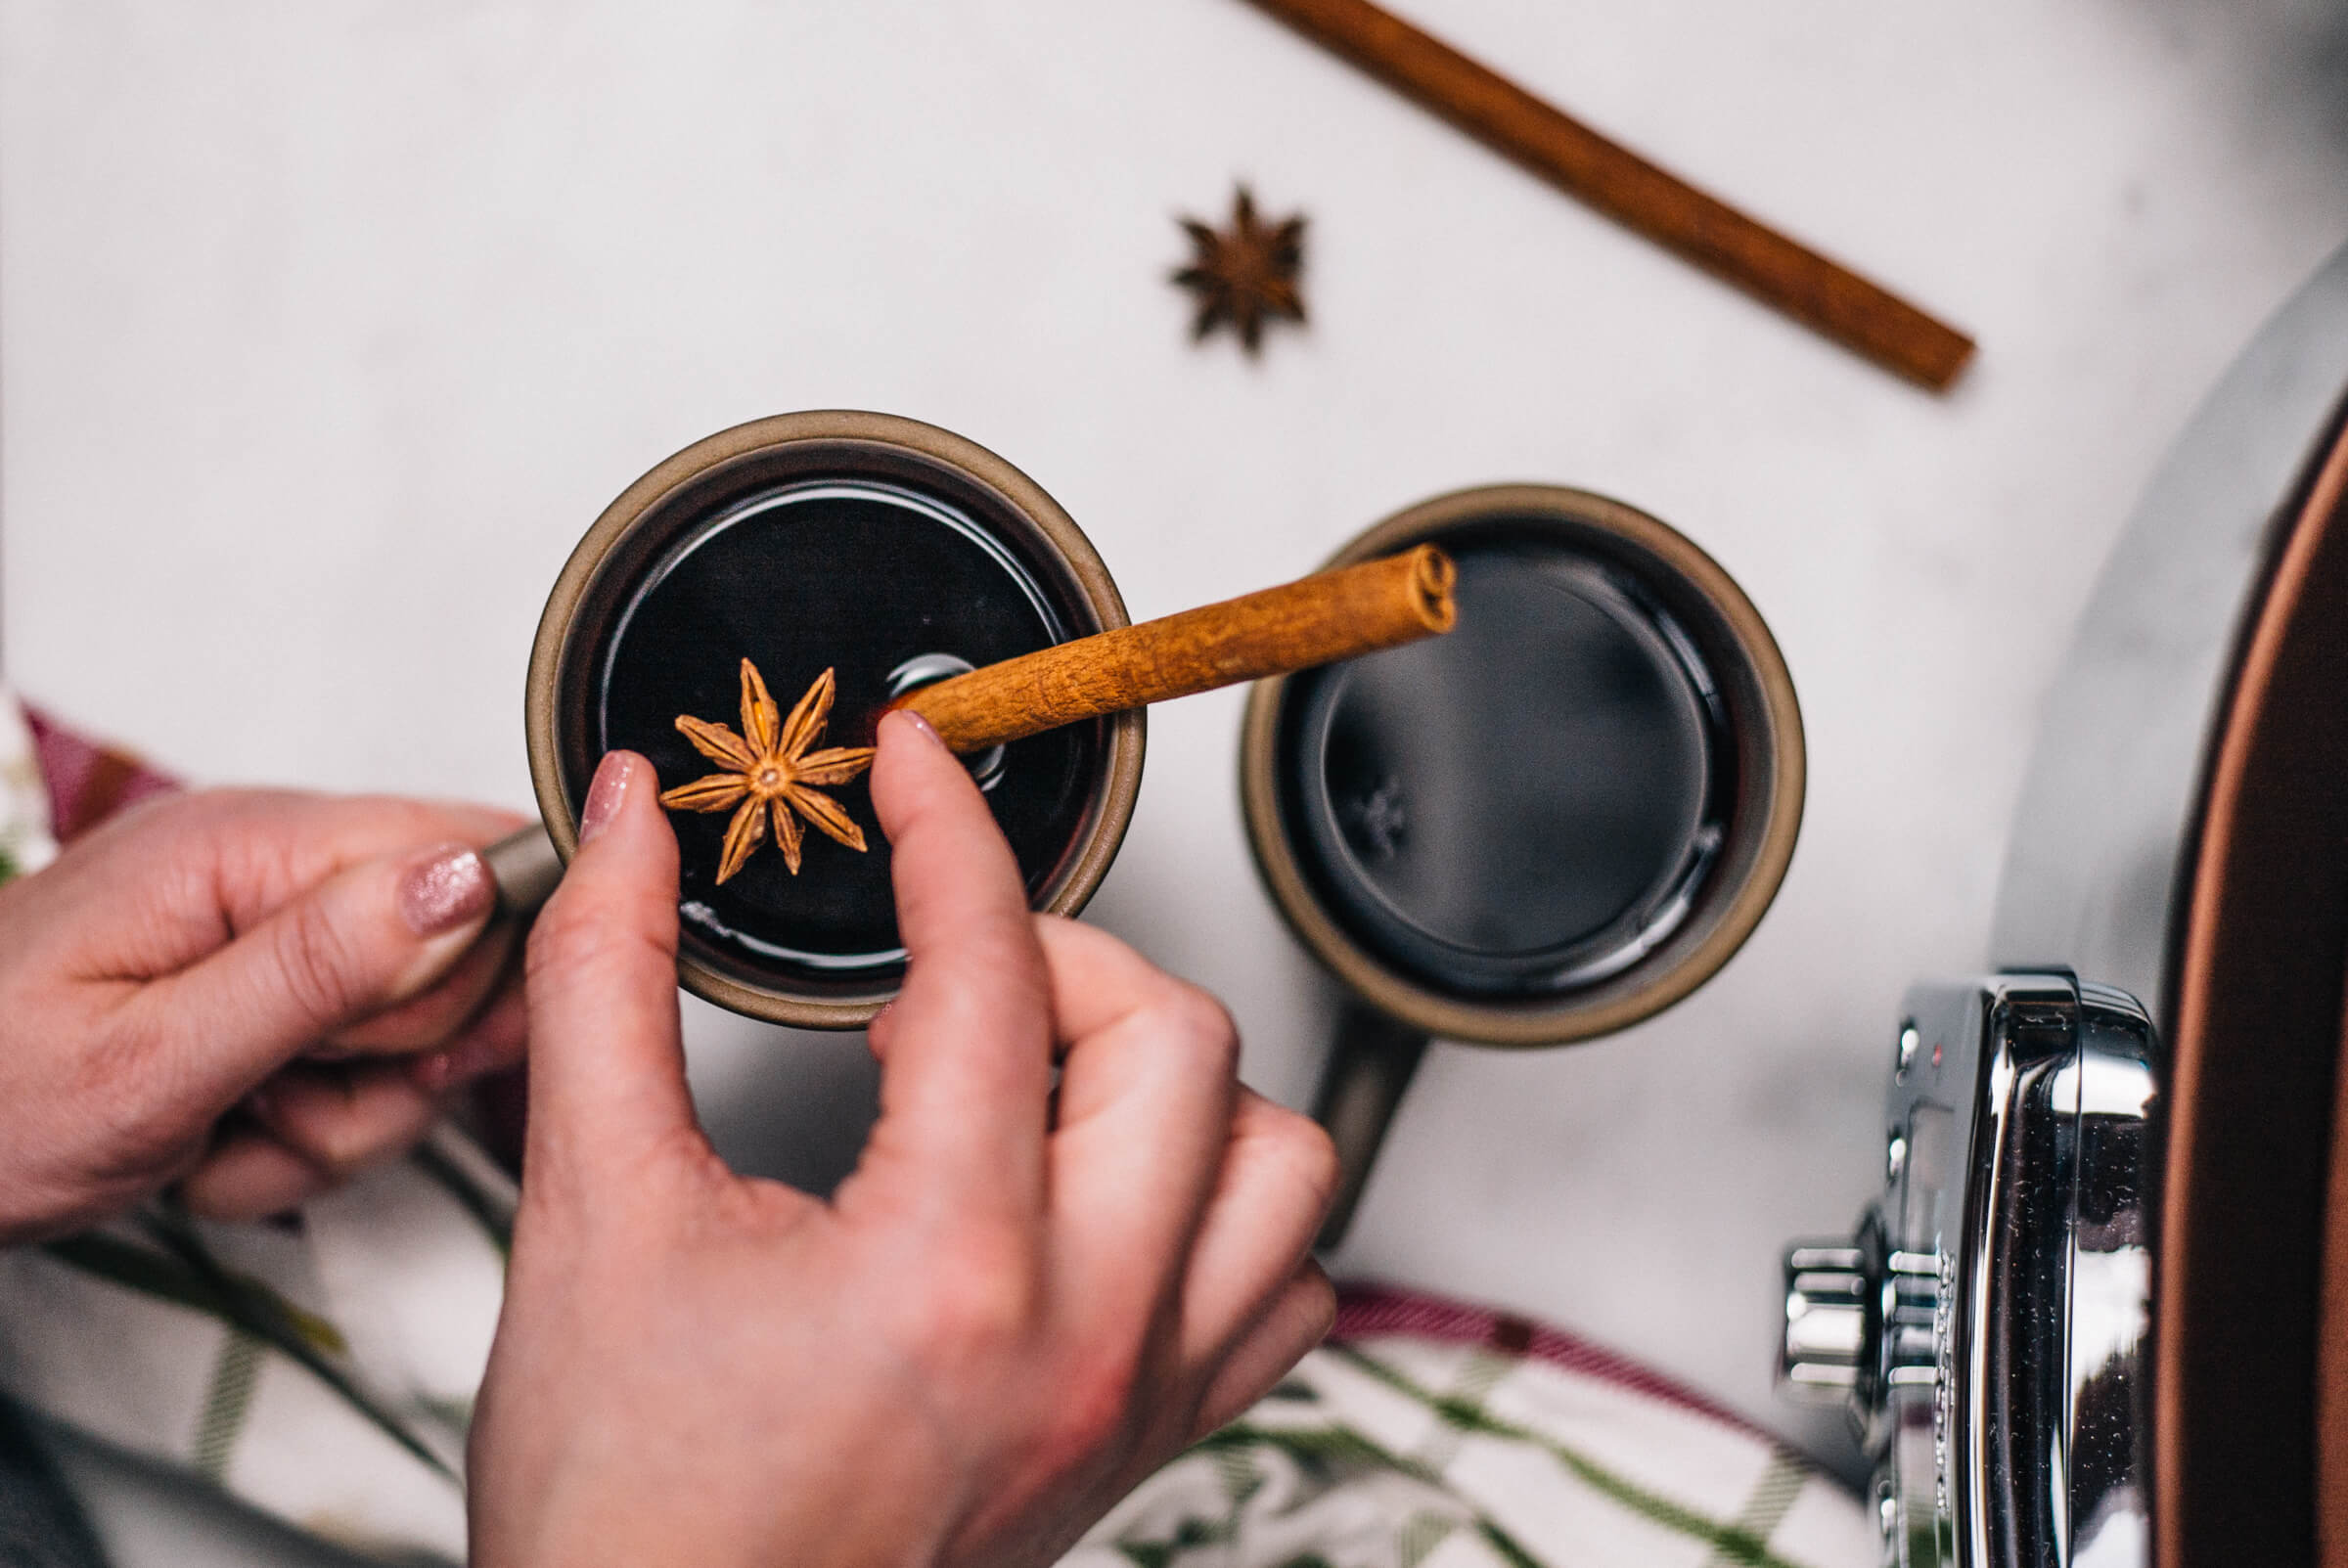 Adding cinnamon and star anise to mulled wine in an All-Clad Gourmet Slow Cooker with The Taste Edit